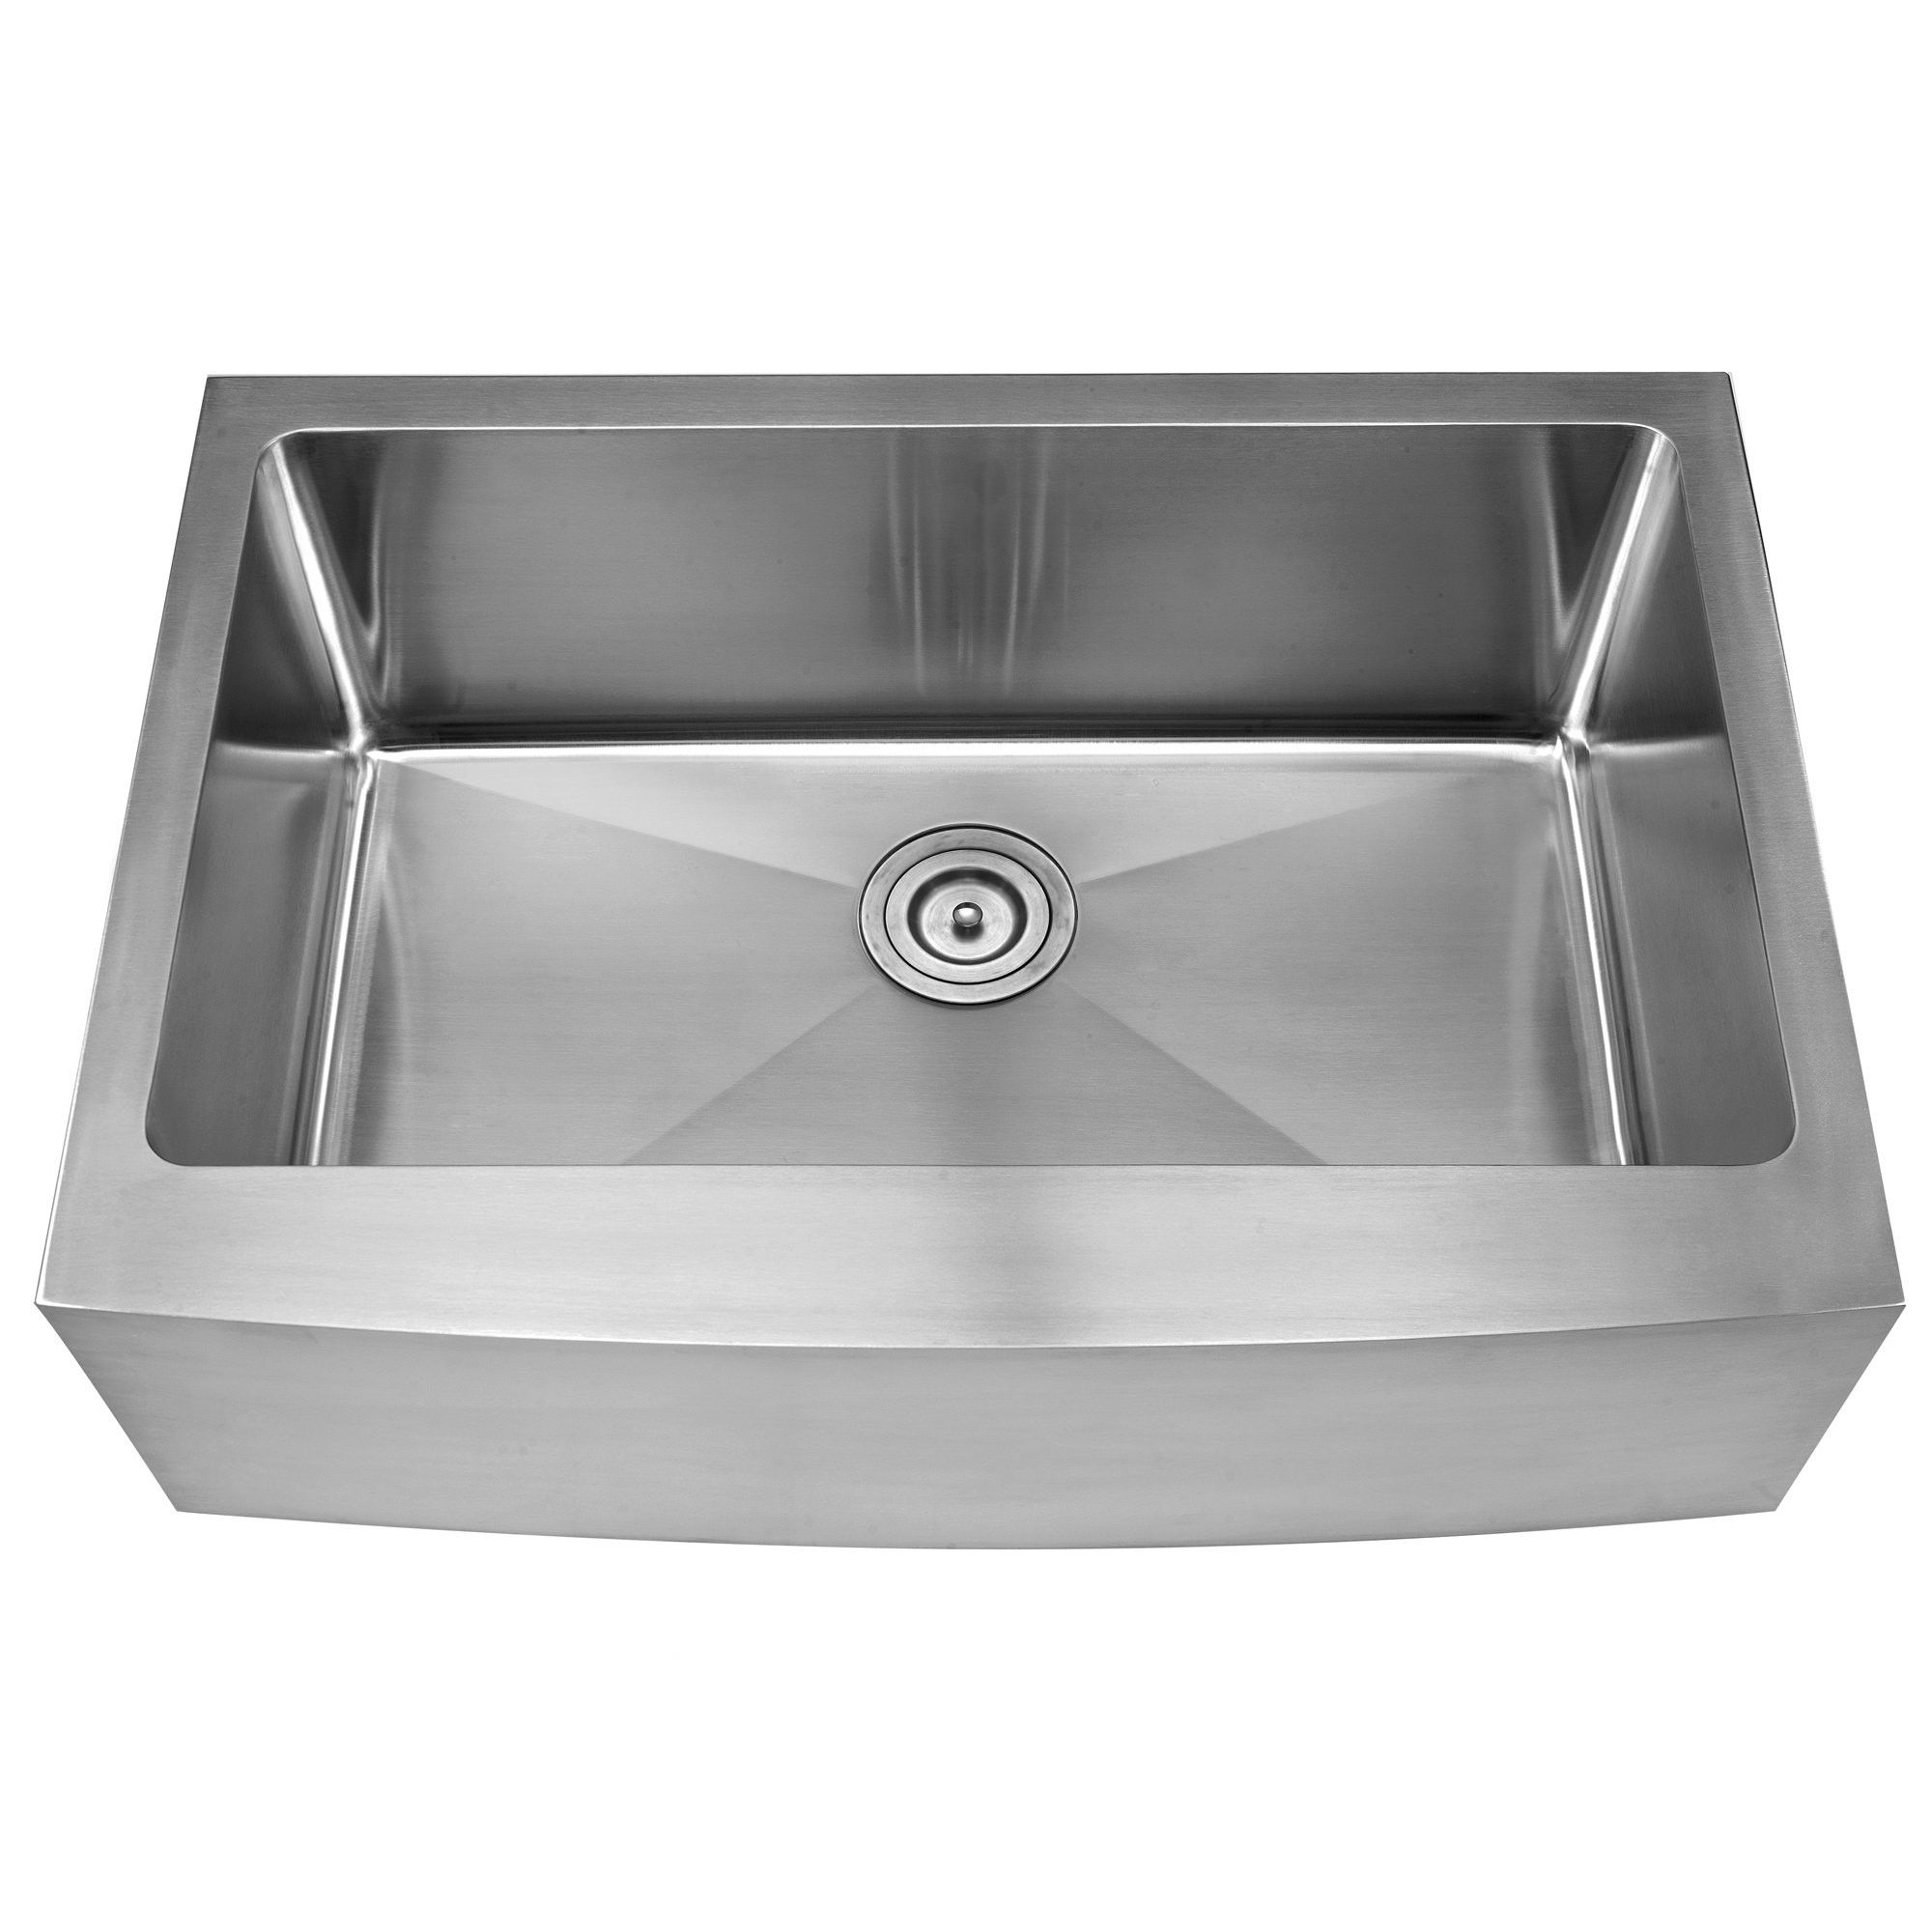 30 L X 21 W Farmhouse Kitchen Sink With Basket Strainer Stainless Steel Kitchen Sink Undermount Stainless Steel Kitchen Sink Single Bowl Kitchen Sink